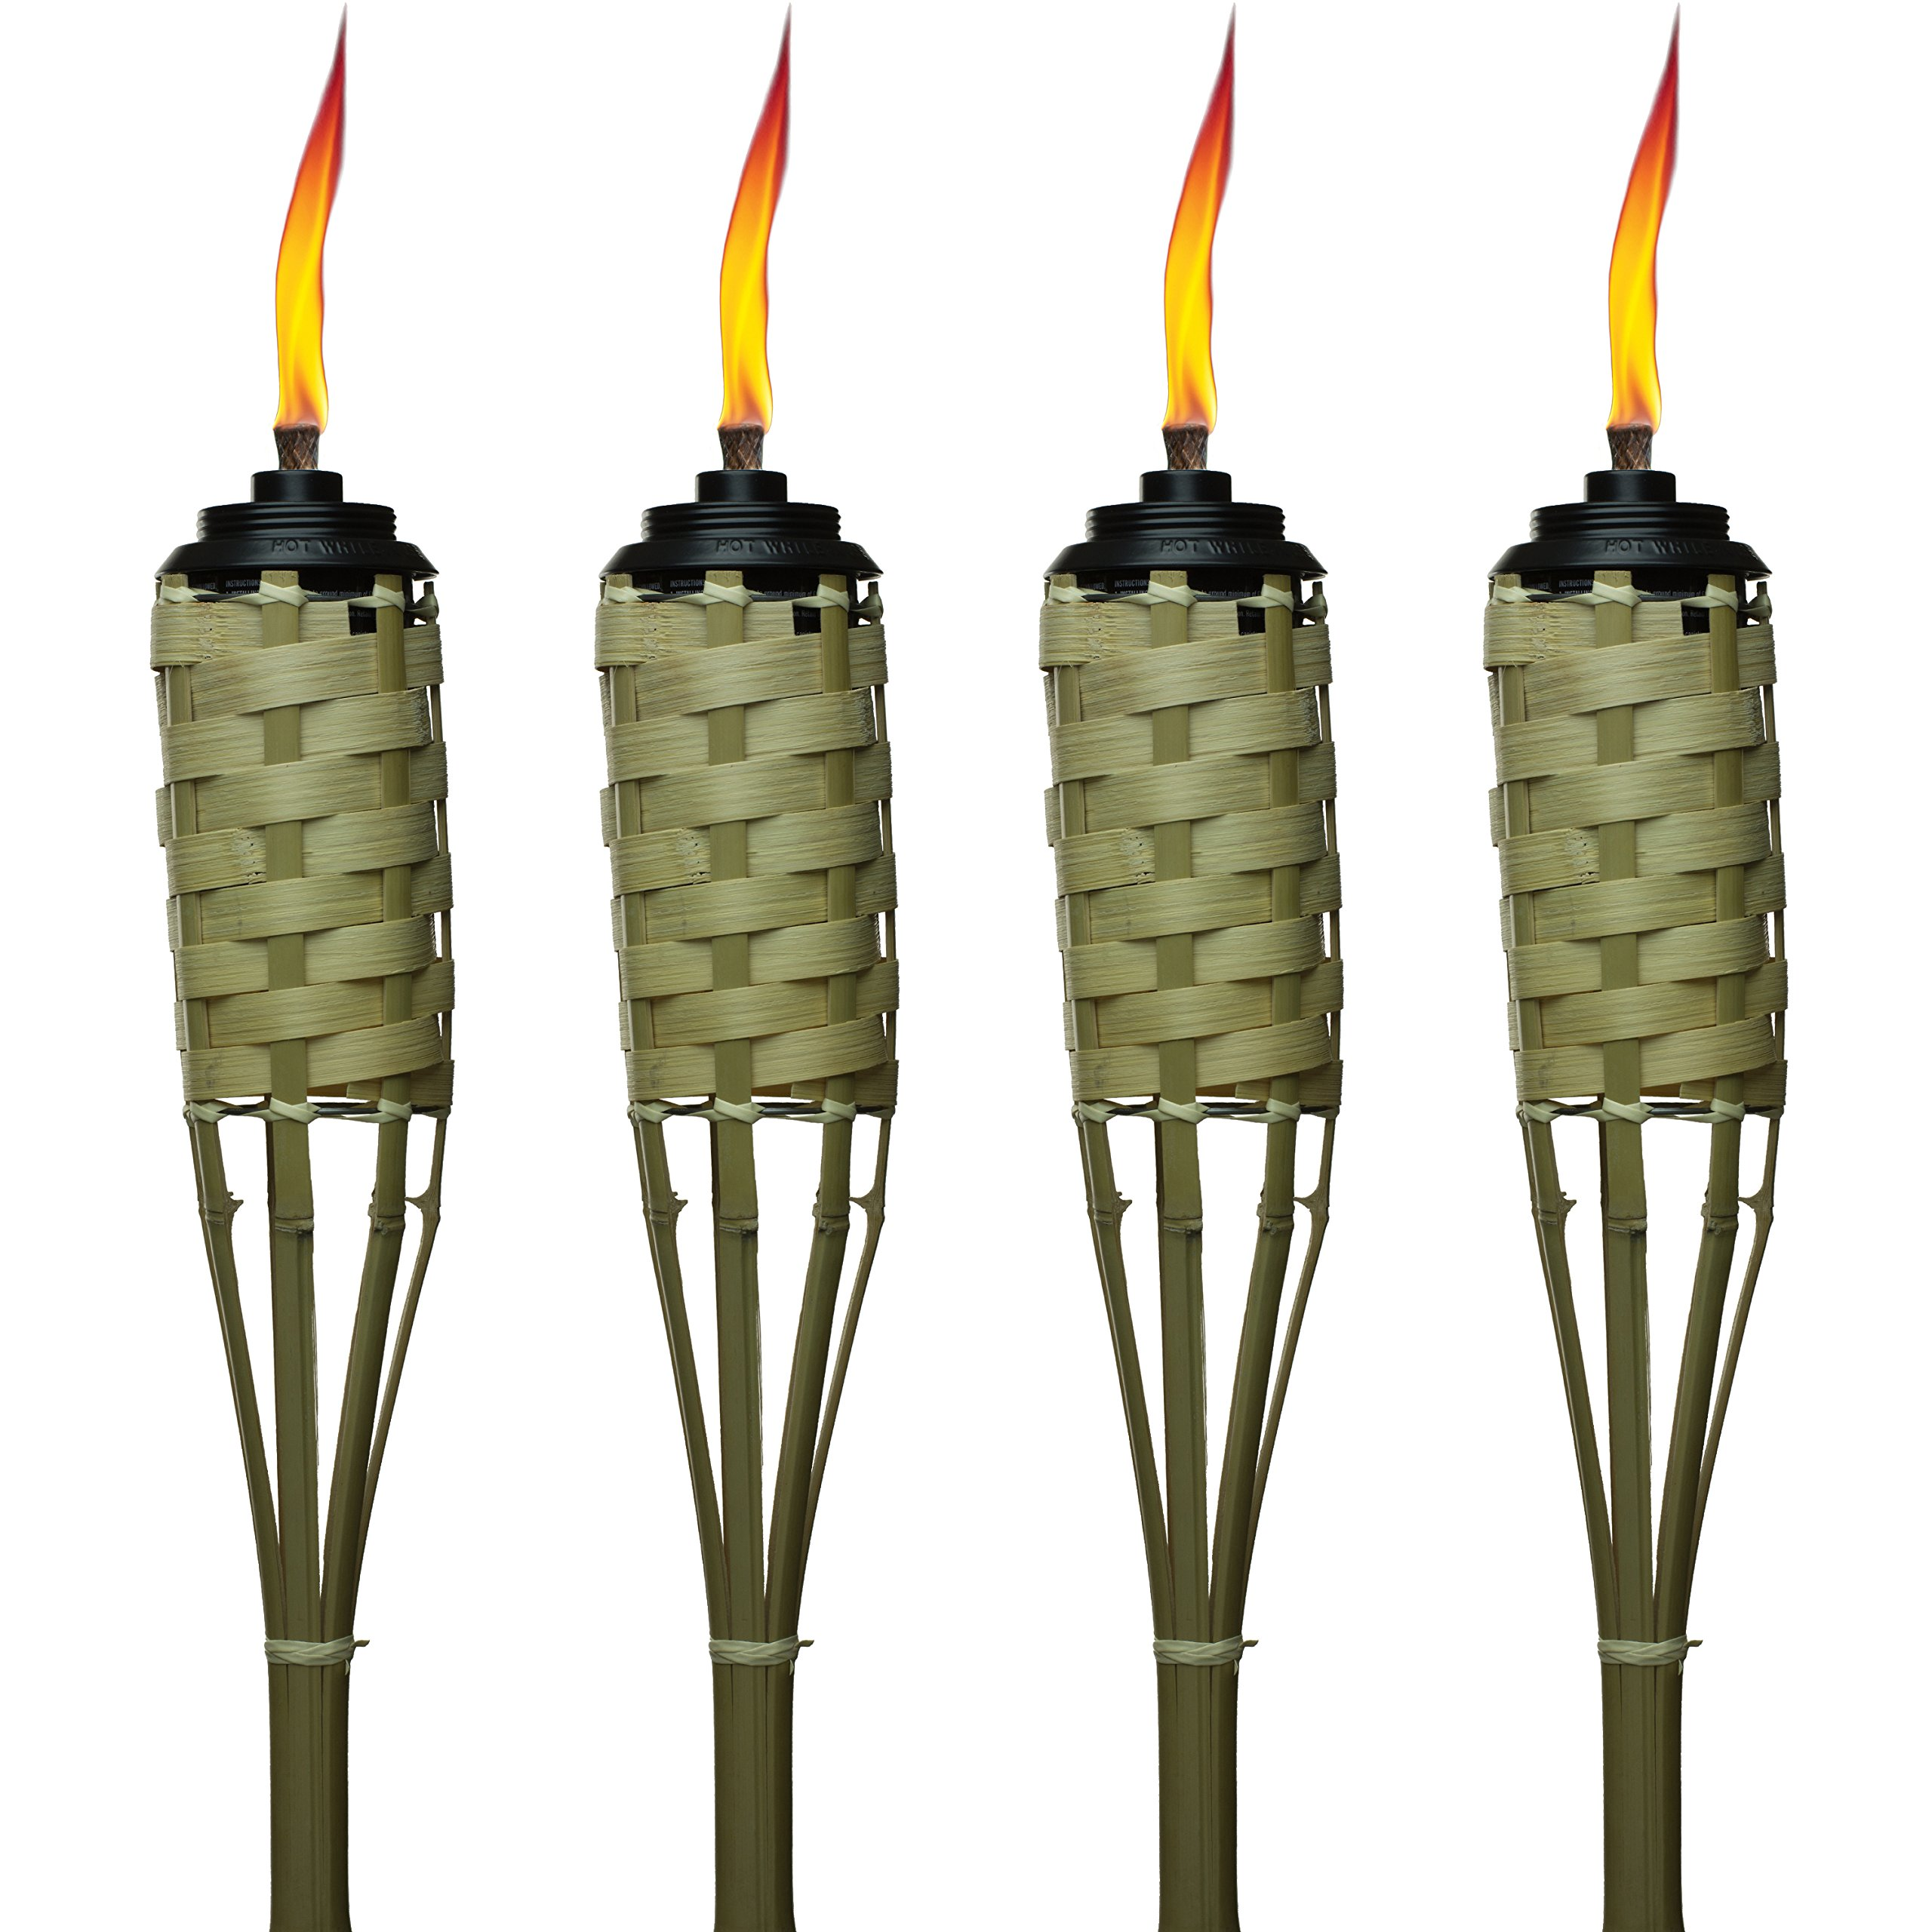 TIKI Brand 57-Inch Luau Bamboo Torches - 4 pack by Tiki